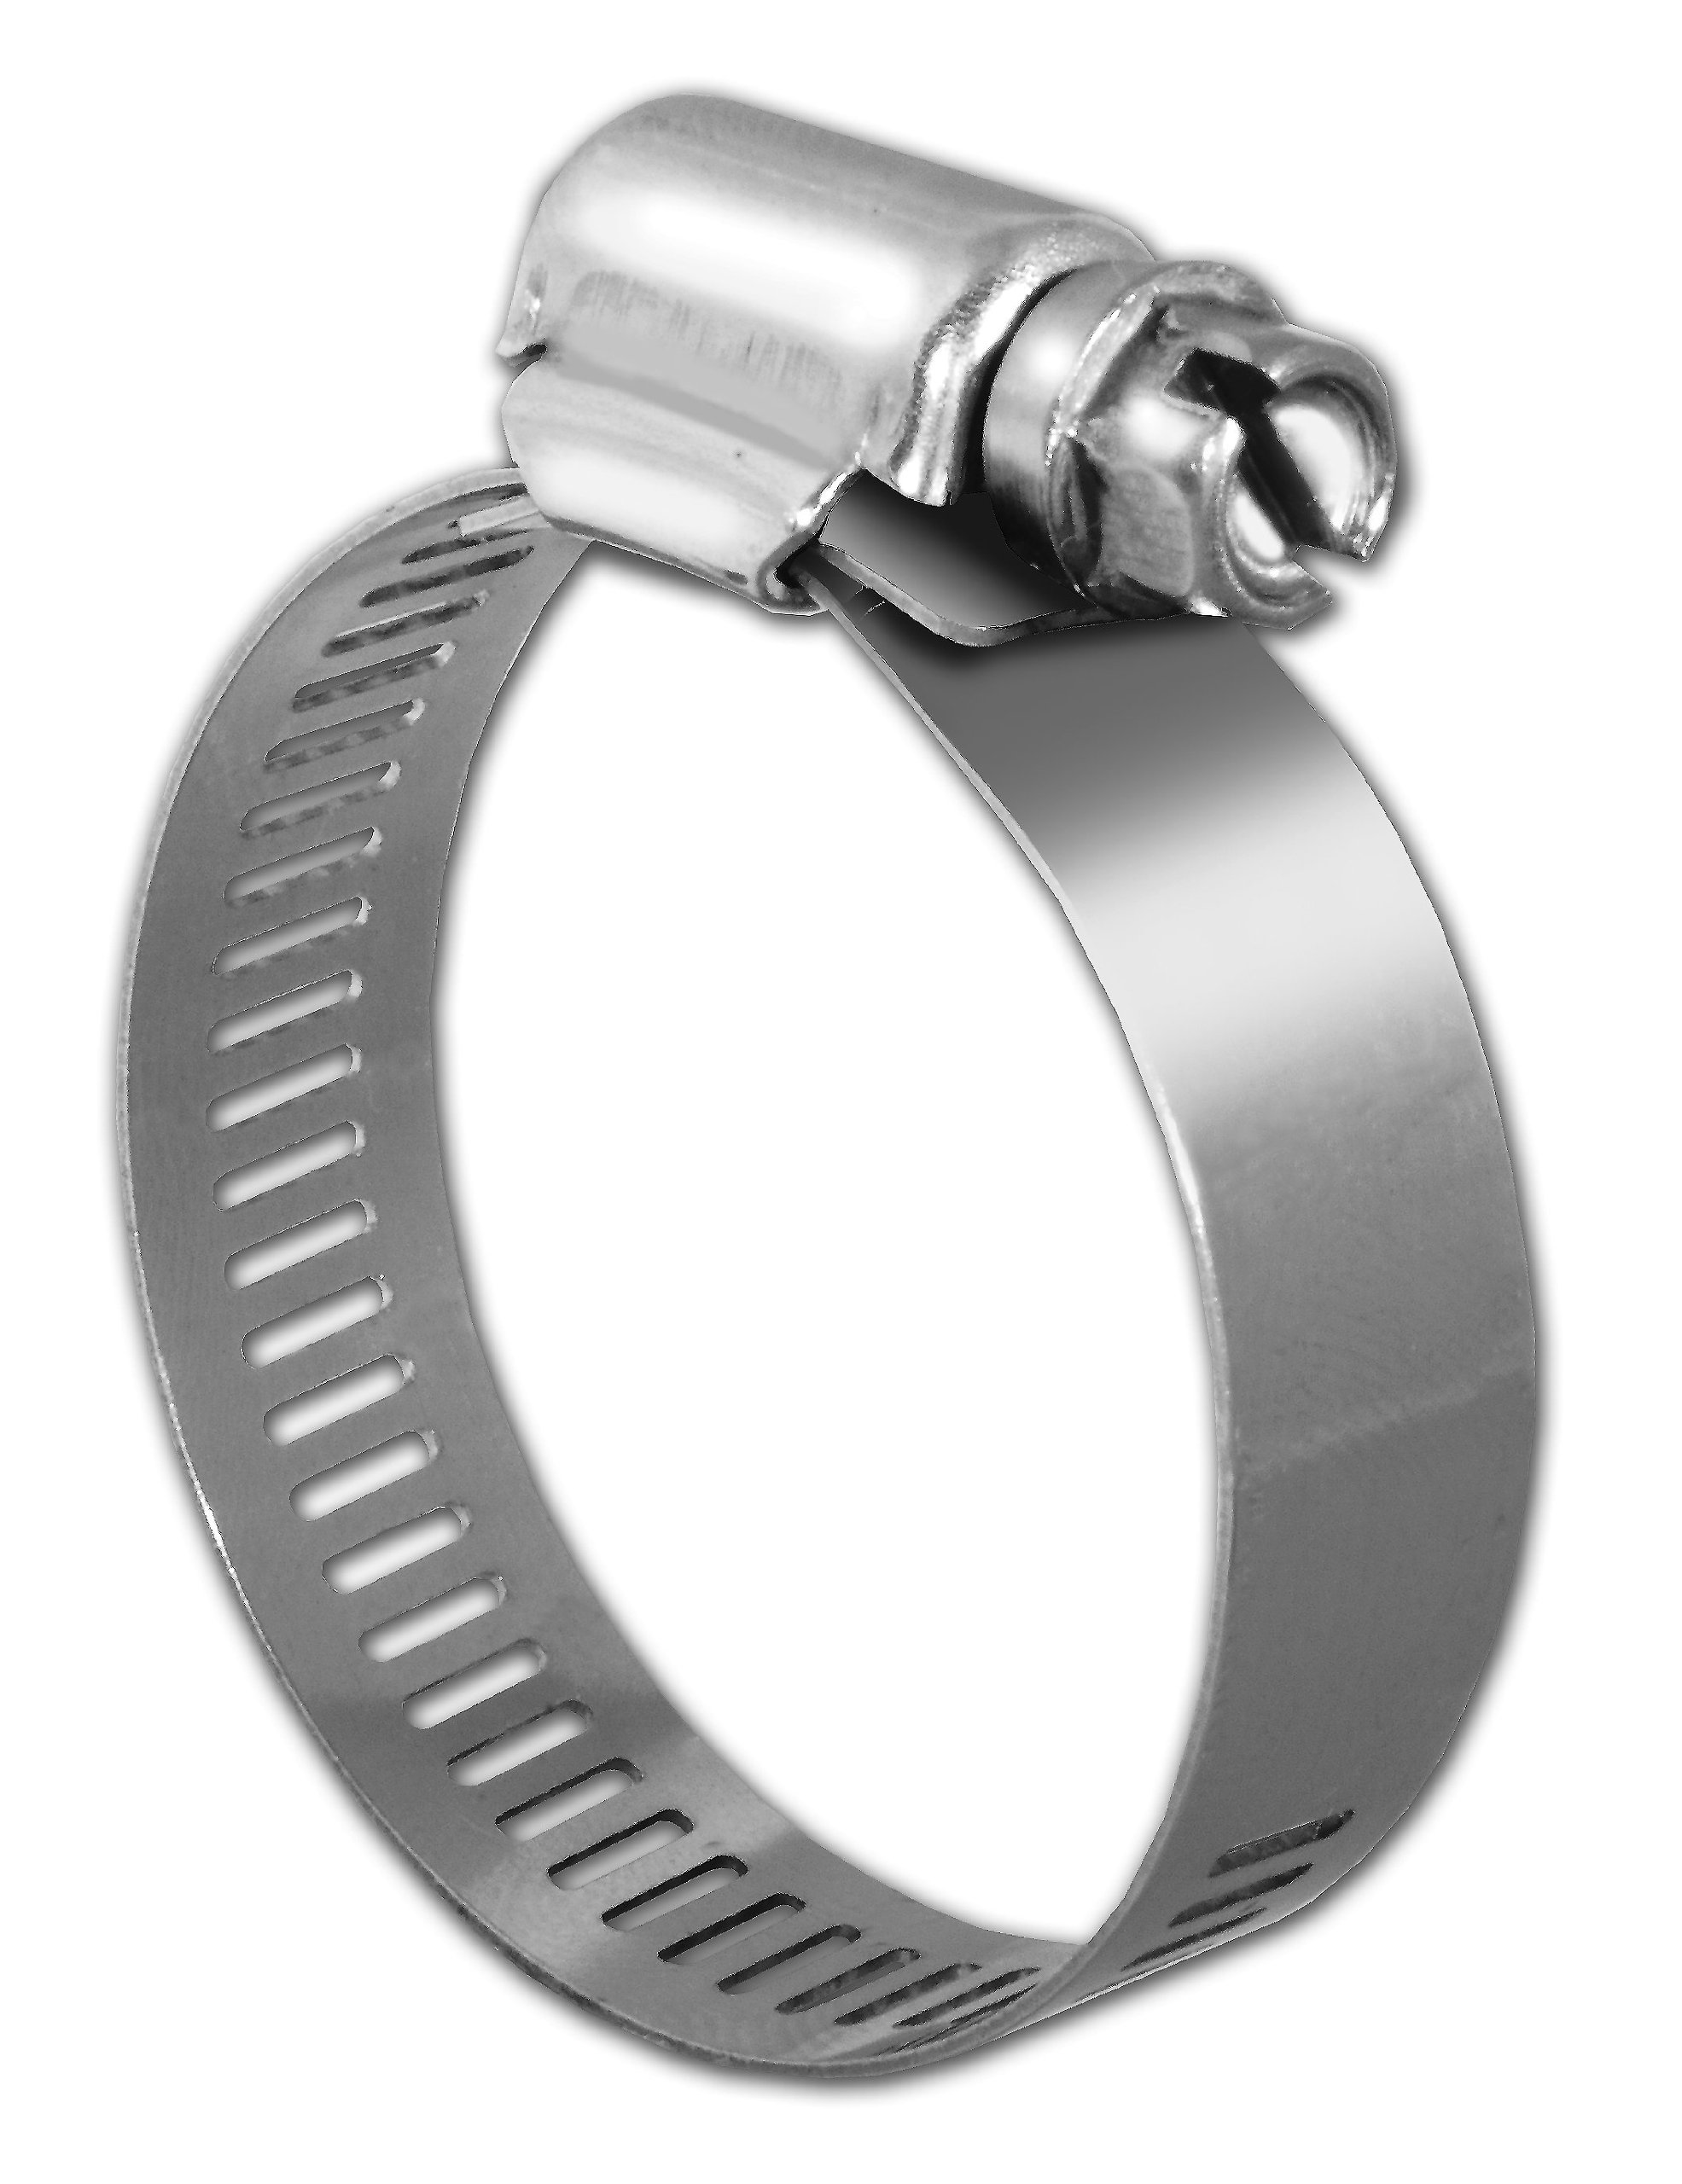 Pro Tie 33025 SAE Size 188 Range 9-3/8-Inch-12-1/4-Inch Regular Duty All Stainless Hose Clamp, 6-Pack by Pro Tie